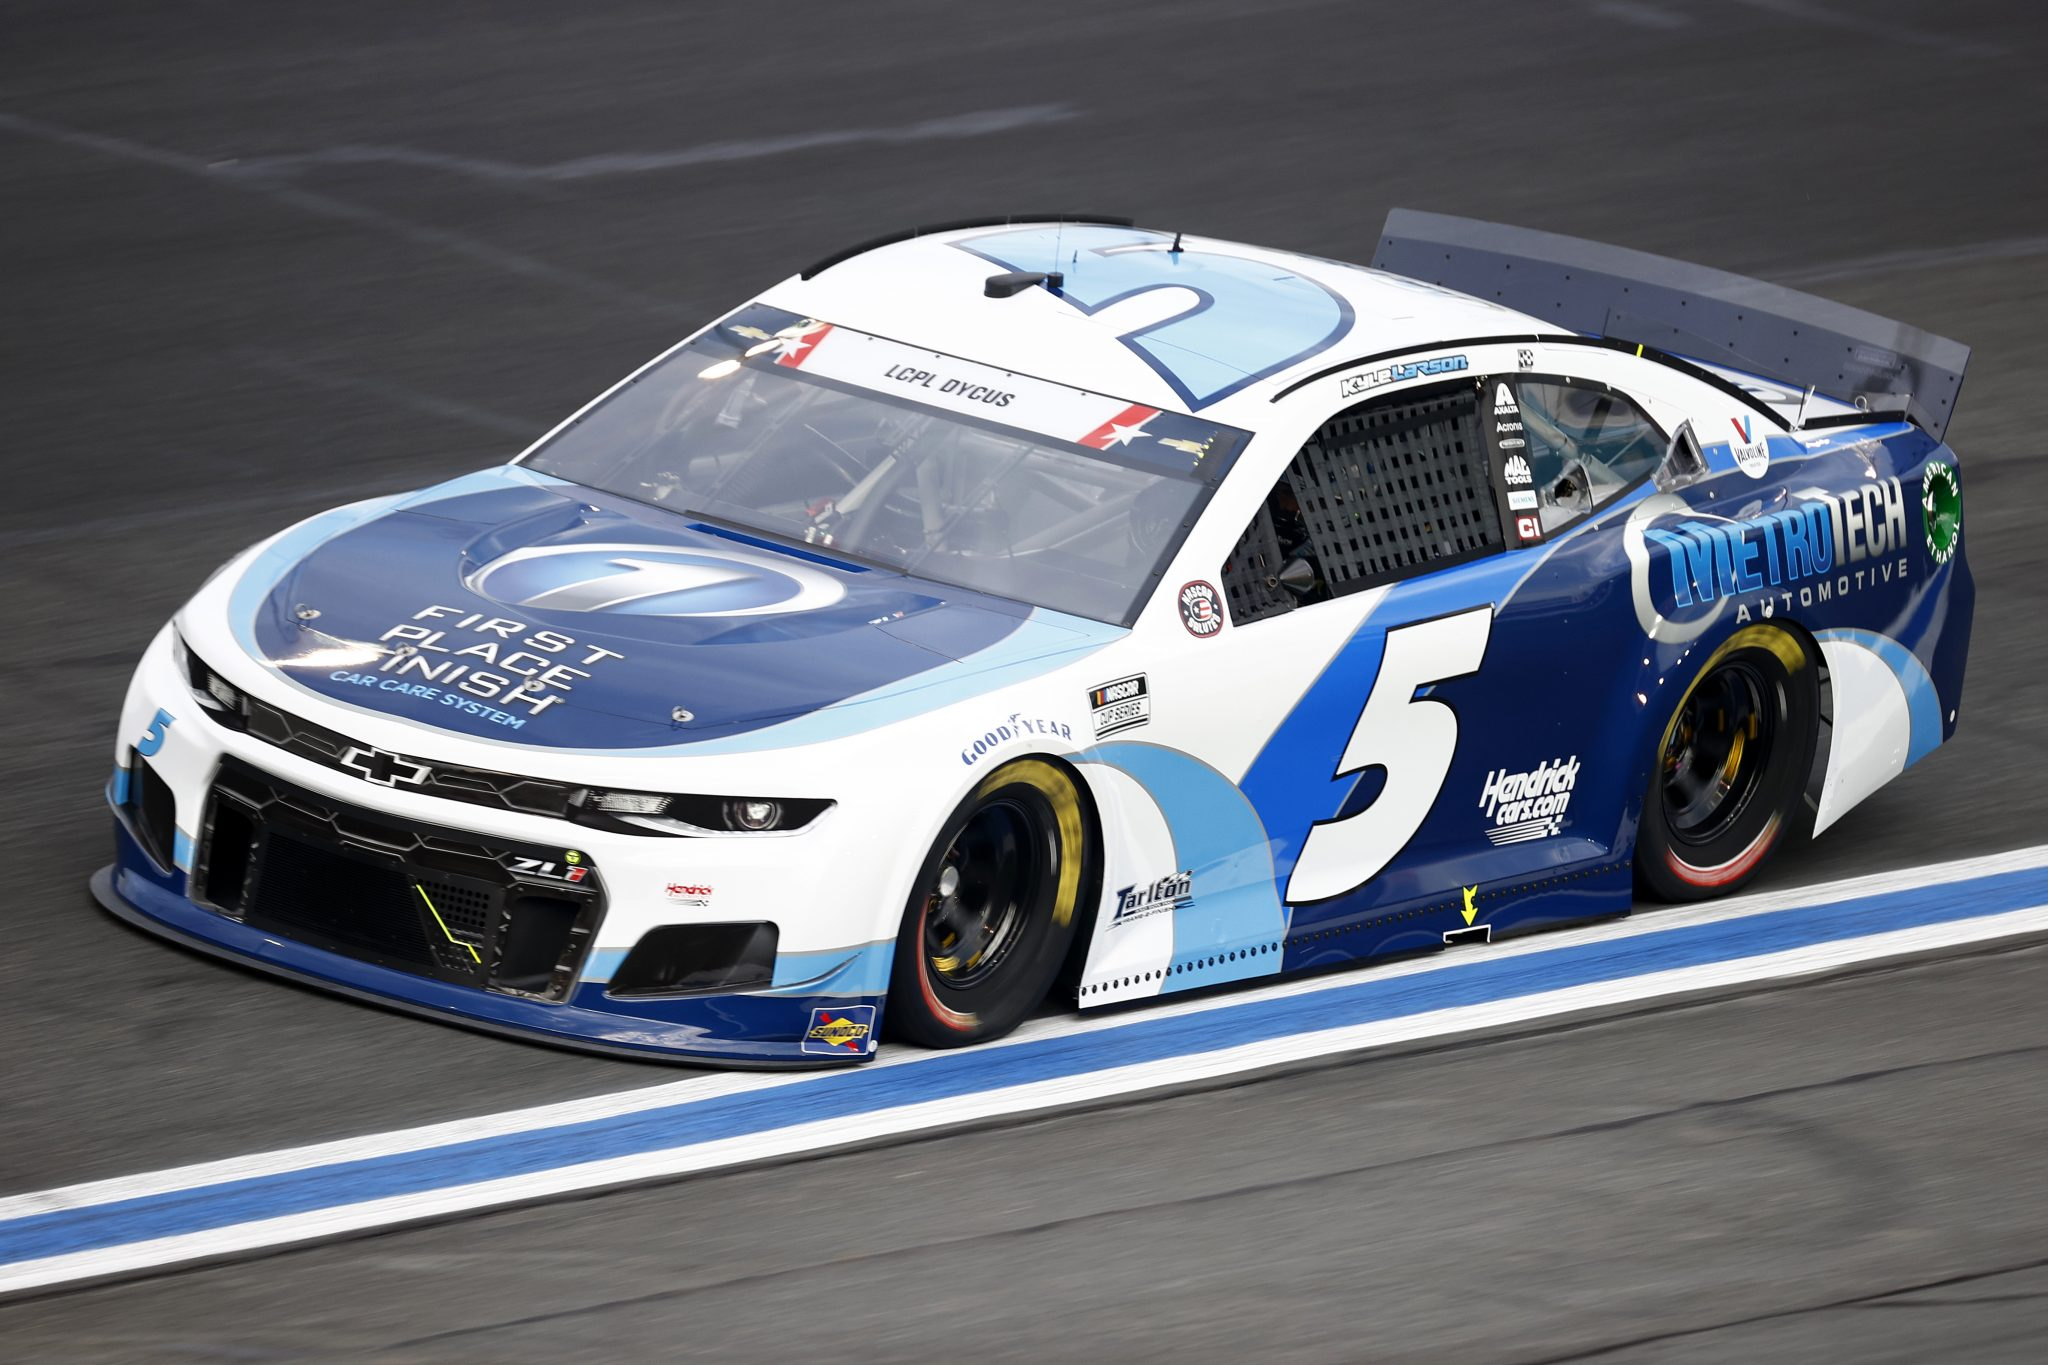 CONCORD, NORTH CAROLINA - MAY 28: Kyle Larson, driver of the #5 Metro Tech Chevrolet, drives during practice for the NASCAR Cup Series Coca-Cola 600 at Charlotte Motor Speedway on May 28, 2021 in Concord, North Carolina. (Photo by Jared C. Tilton/Getty Images) | Getty Images